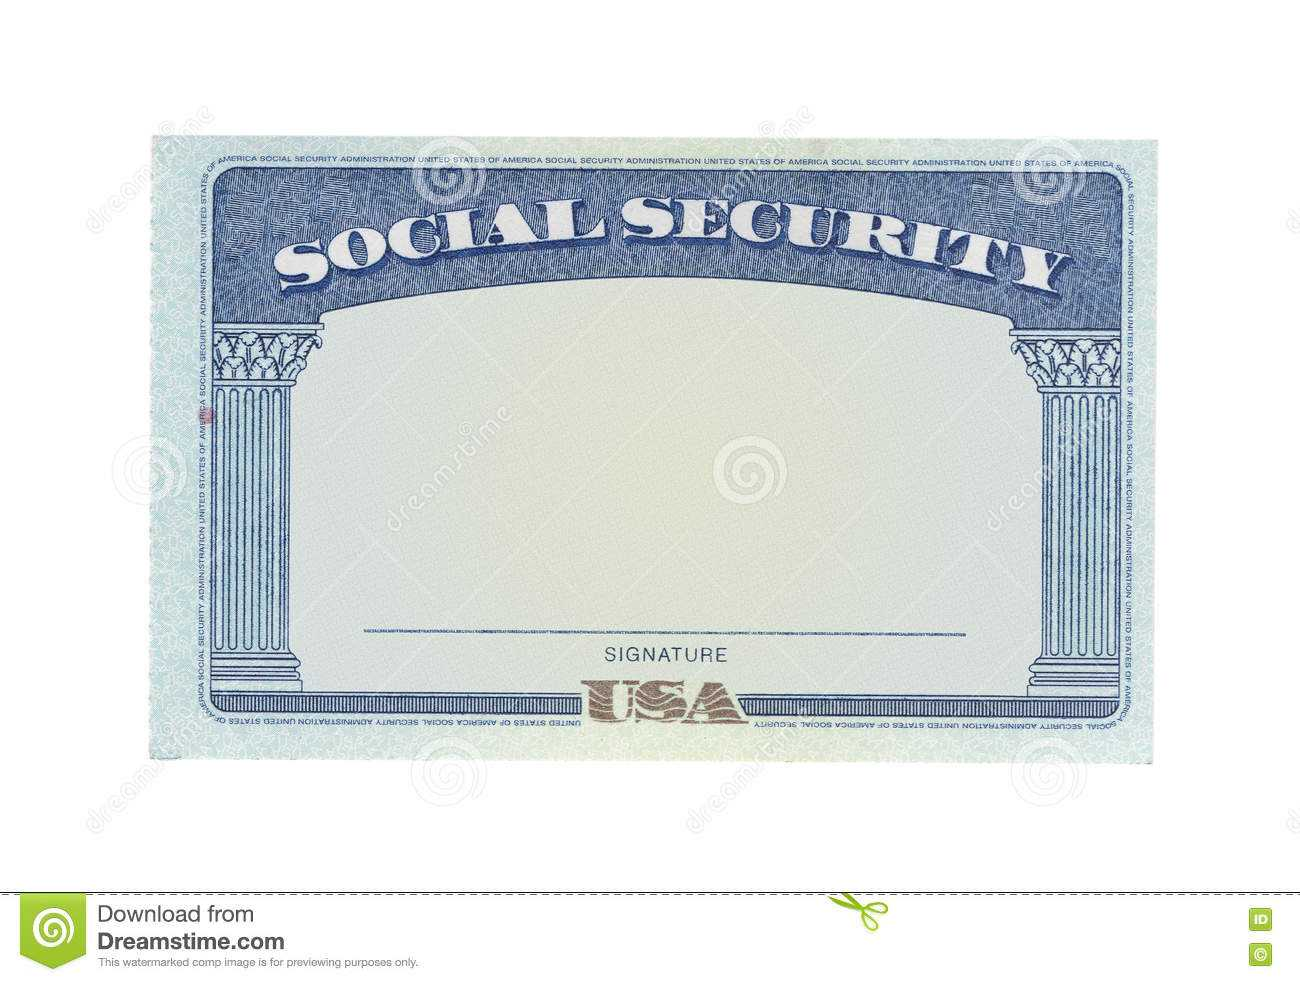 Blank Social Security Card Template Download - Great With Regard To Fake Social Security Card Template Download